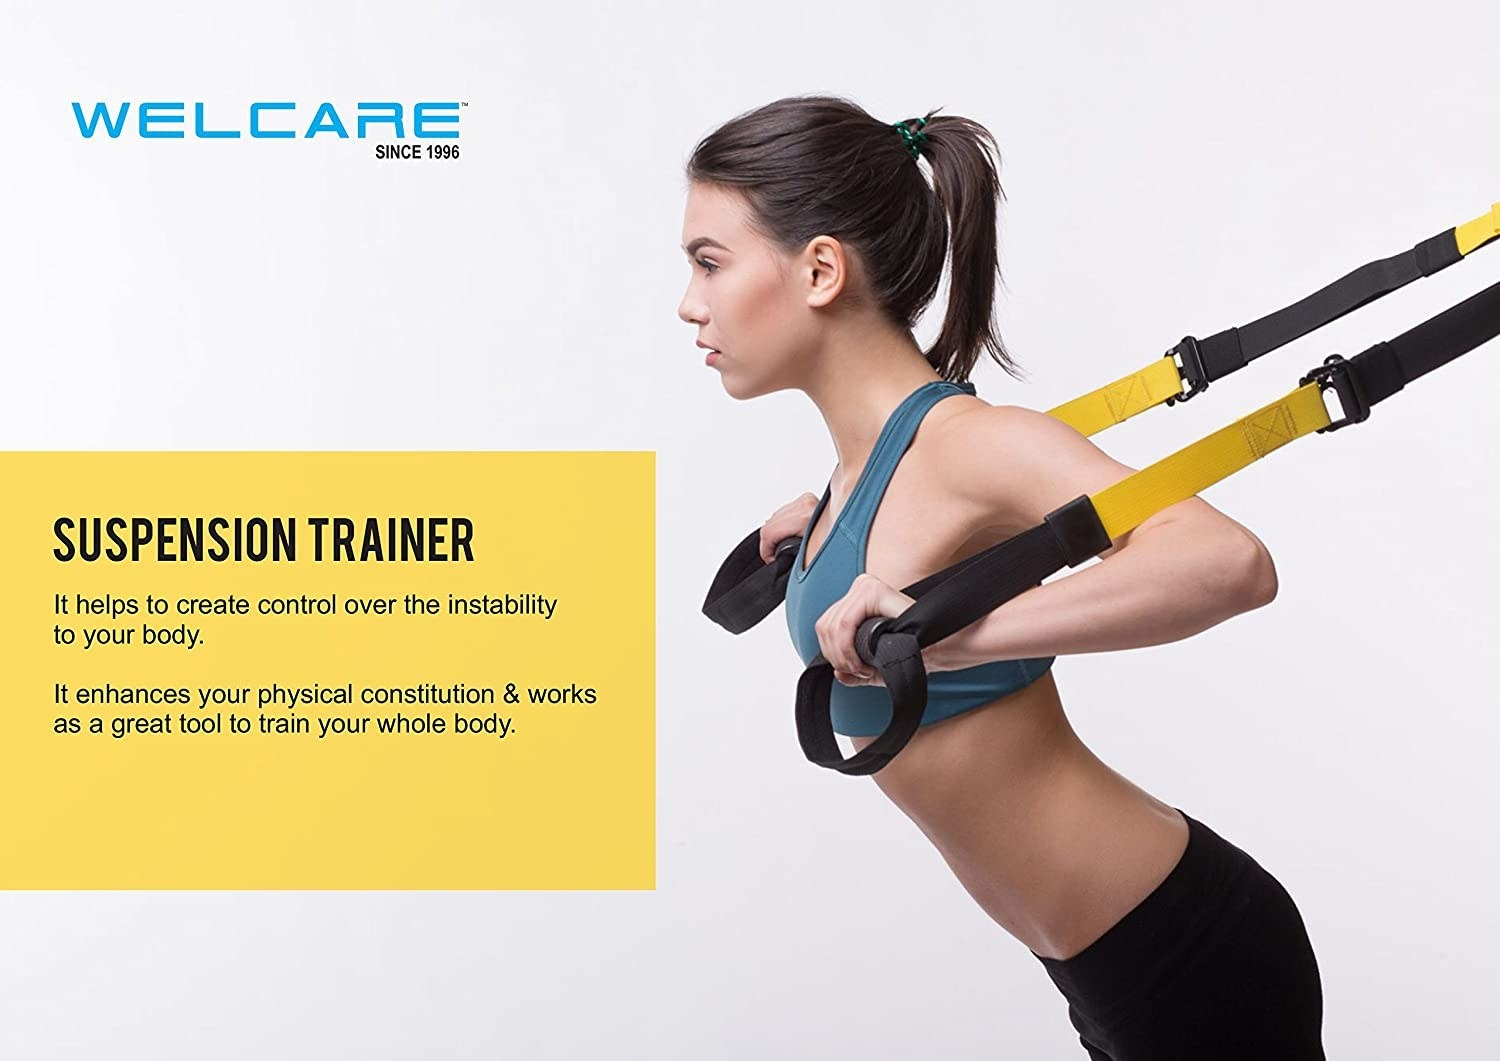 A woman hinging forward with the suspension trainer on her arms